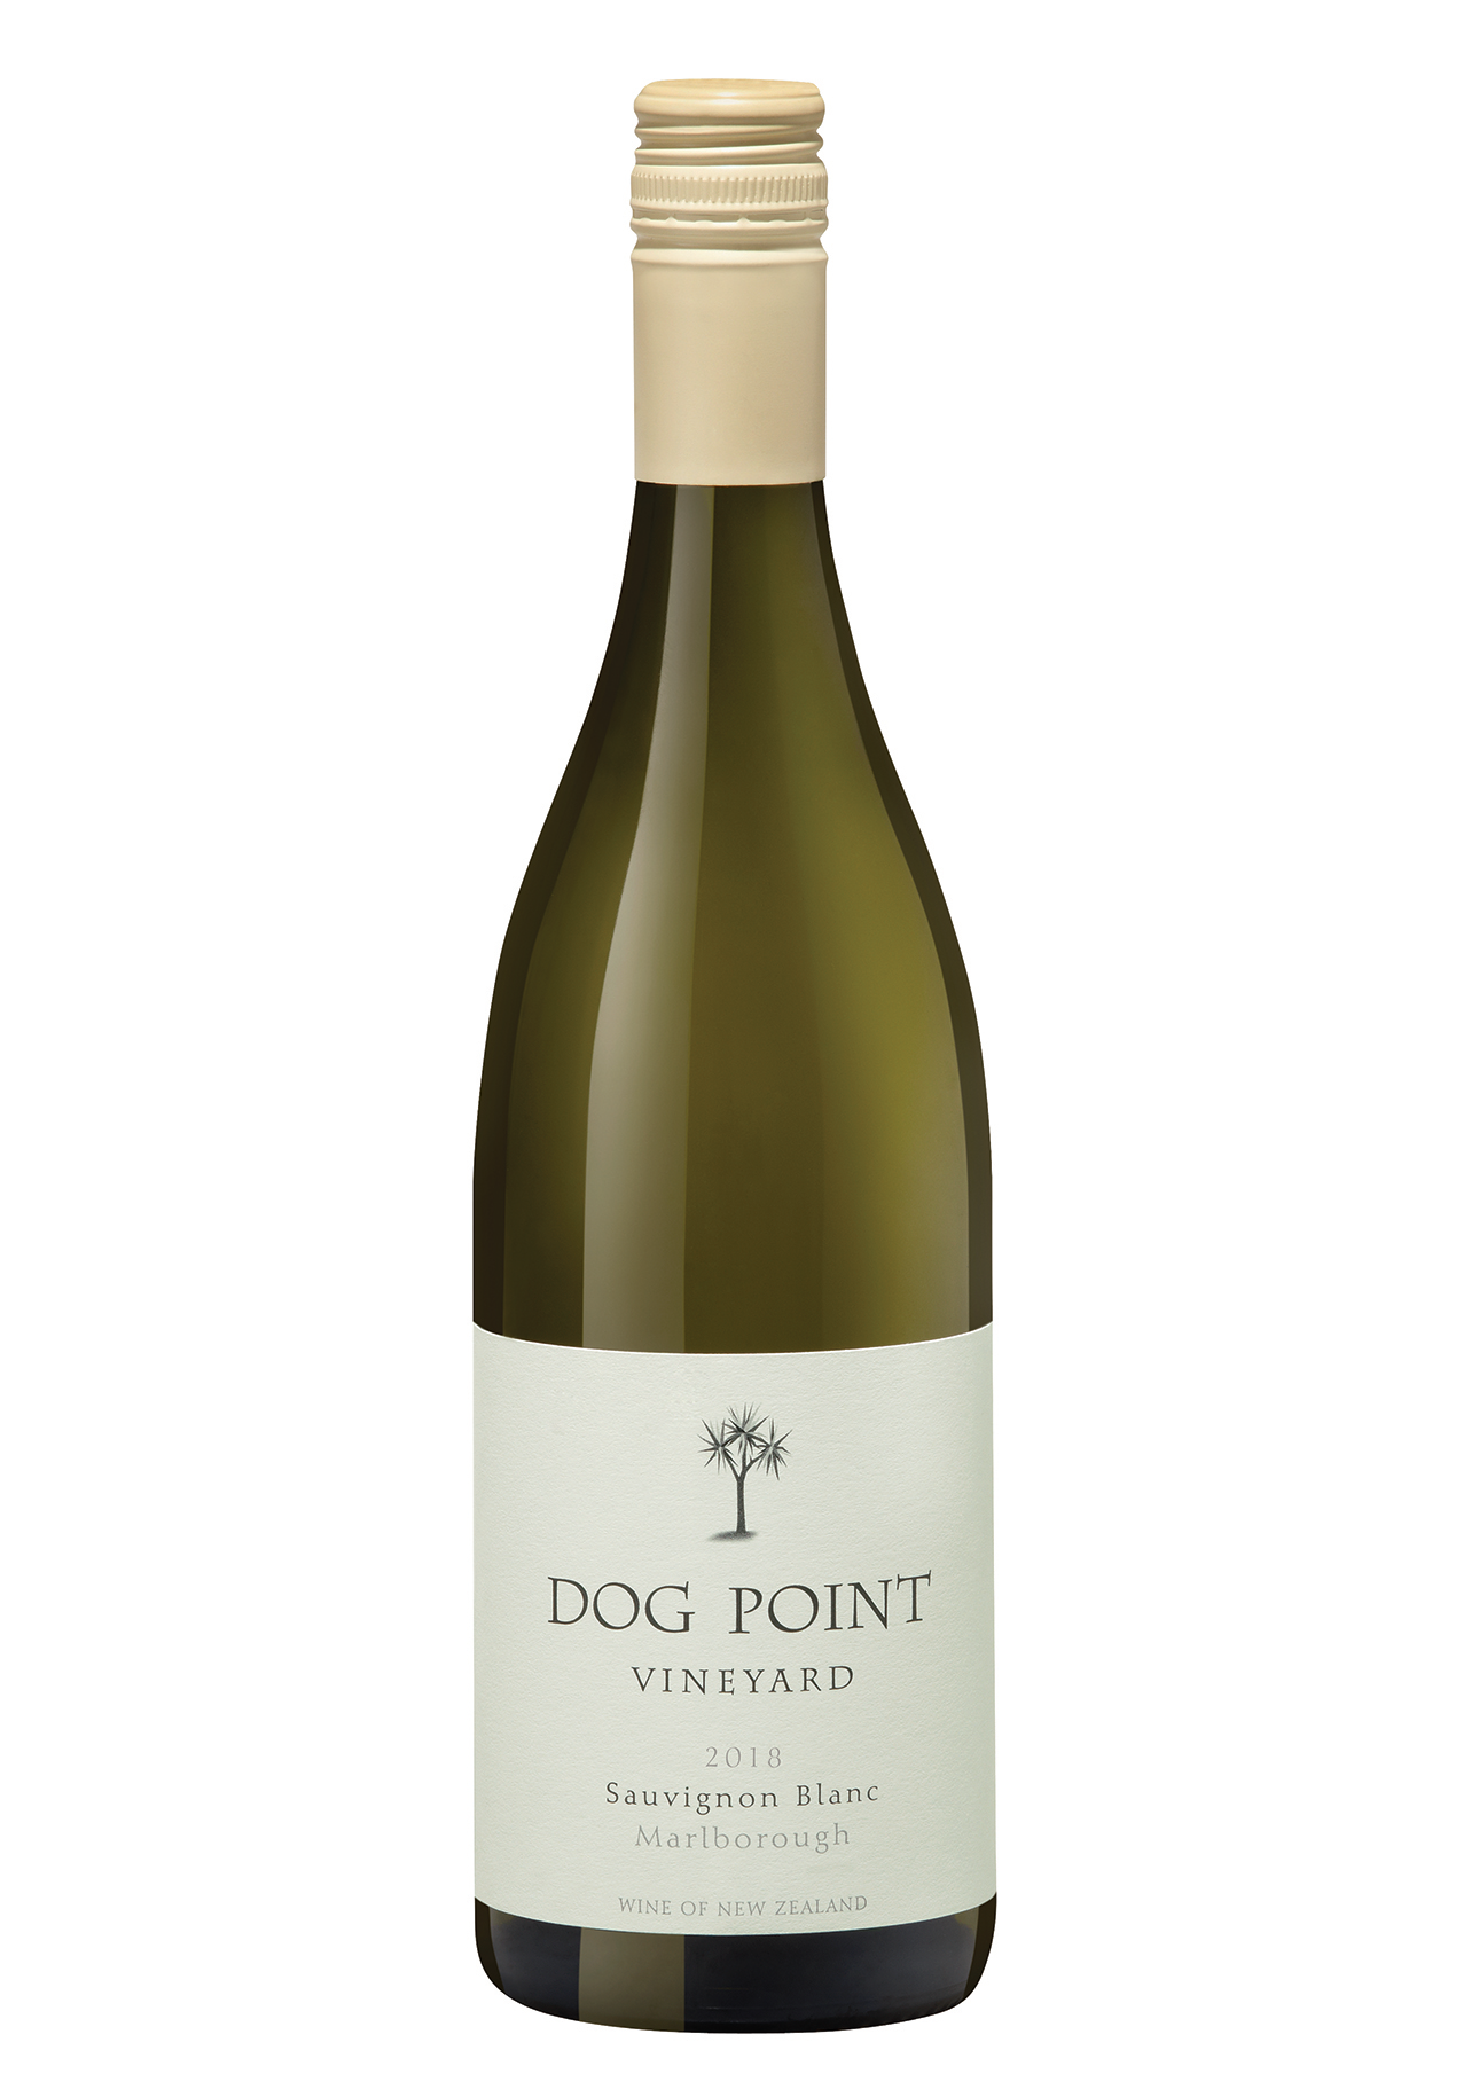 Dog Point Vineyard - Sauvignon Blanc Marlborough